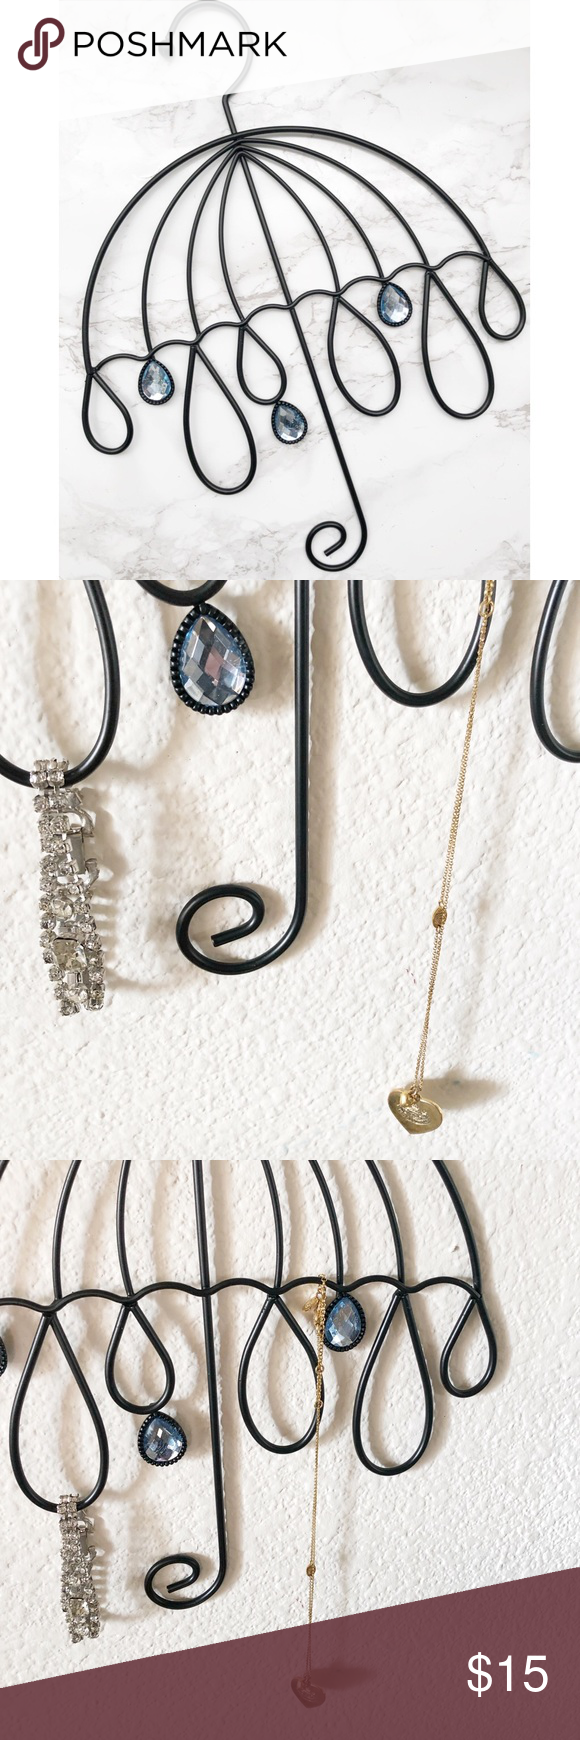 Jewelry Organizer Wall Decor Hanging Jewelry Organizer for bracelets and necklaces. Display your jewelry - no more tangles!  Cute umbrella shaped iron organizer with blue jewels.  Holds up to 10 pieces of jewelry   New! Storage & Organization Jewelry Organizers #cuteumbrellas Jewelry Organizer Wall Decor Hanging Jewelry Organizer for bracelets and necklaces. Display your jewelry - no more tangles!  Cute umbrella shaped iron organizer with blue jewels.  Holds up to 10 pieces of jewelry   New! Sto #cuteumbrellas